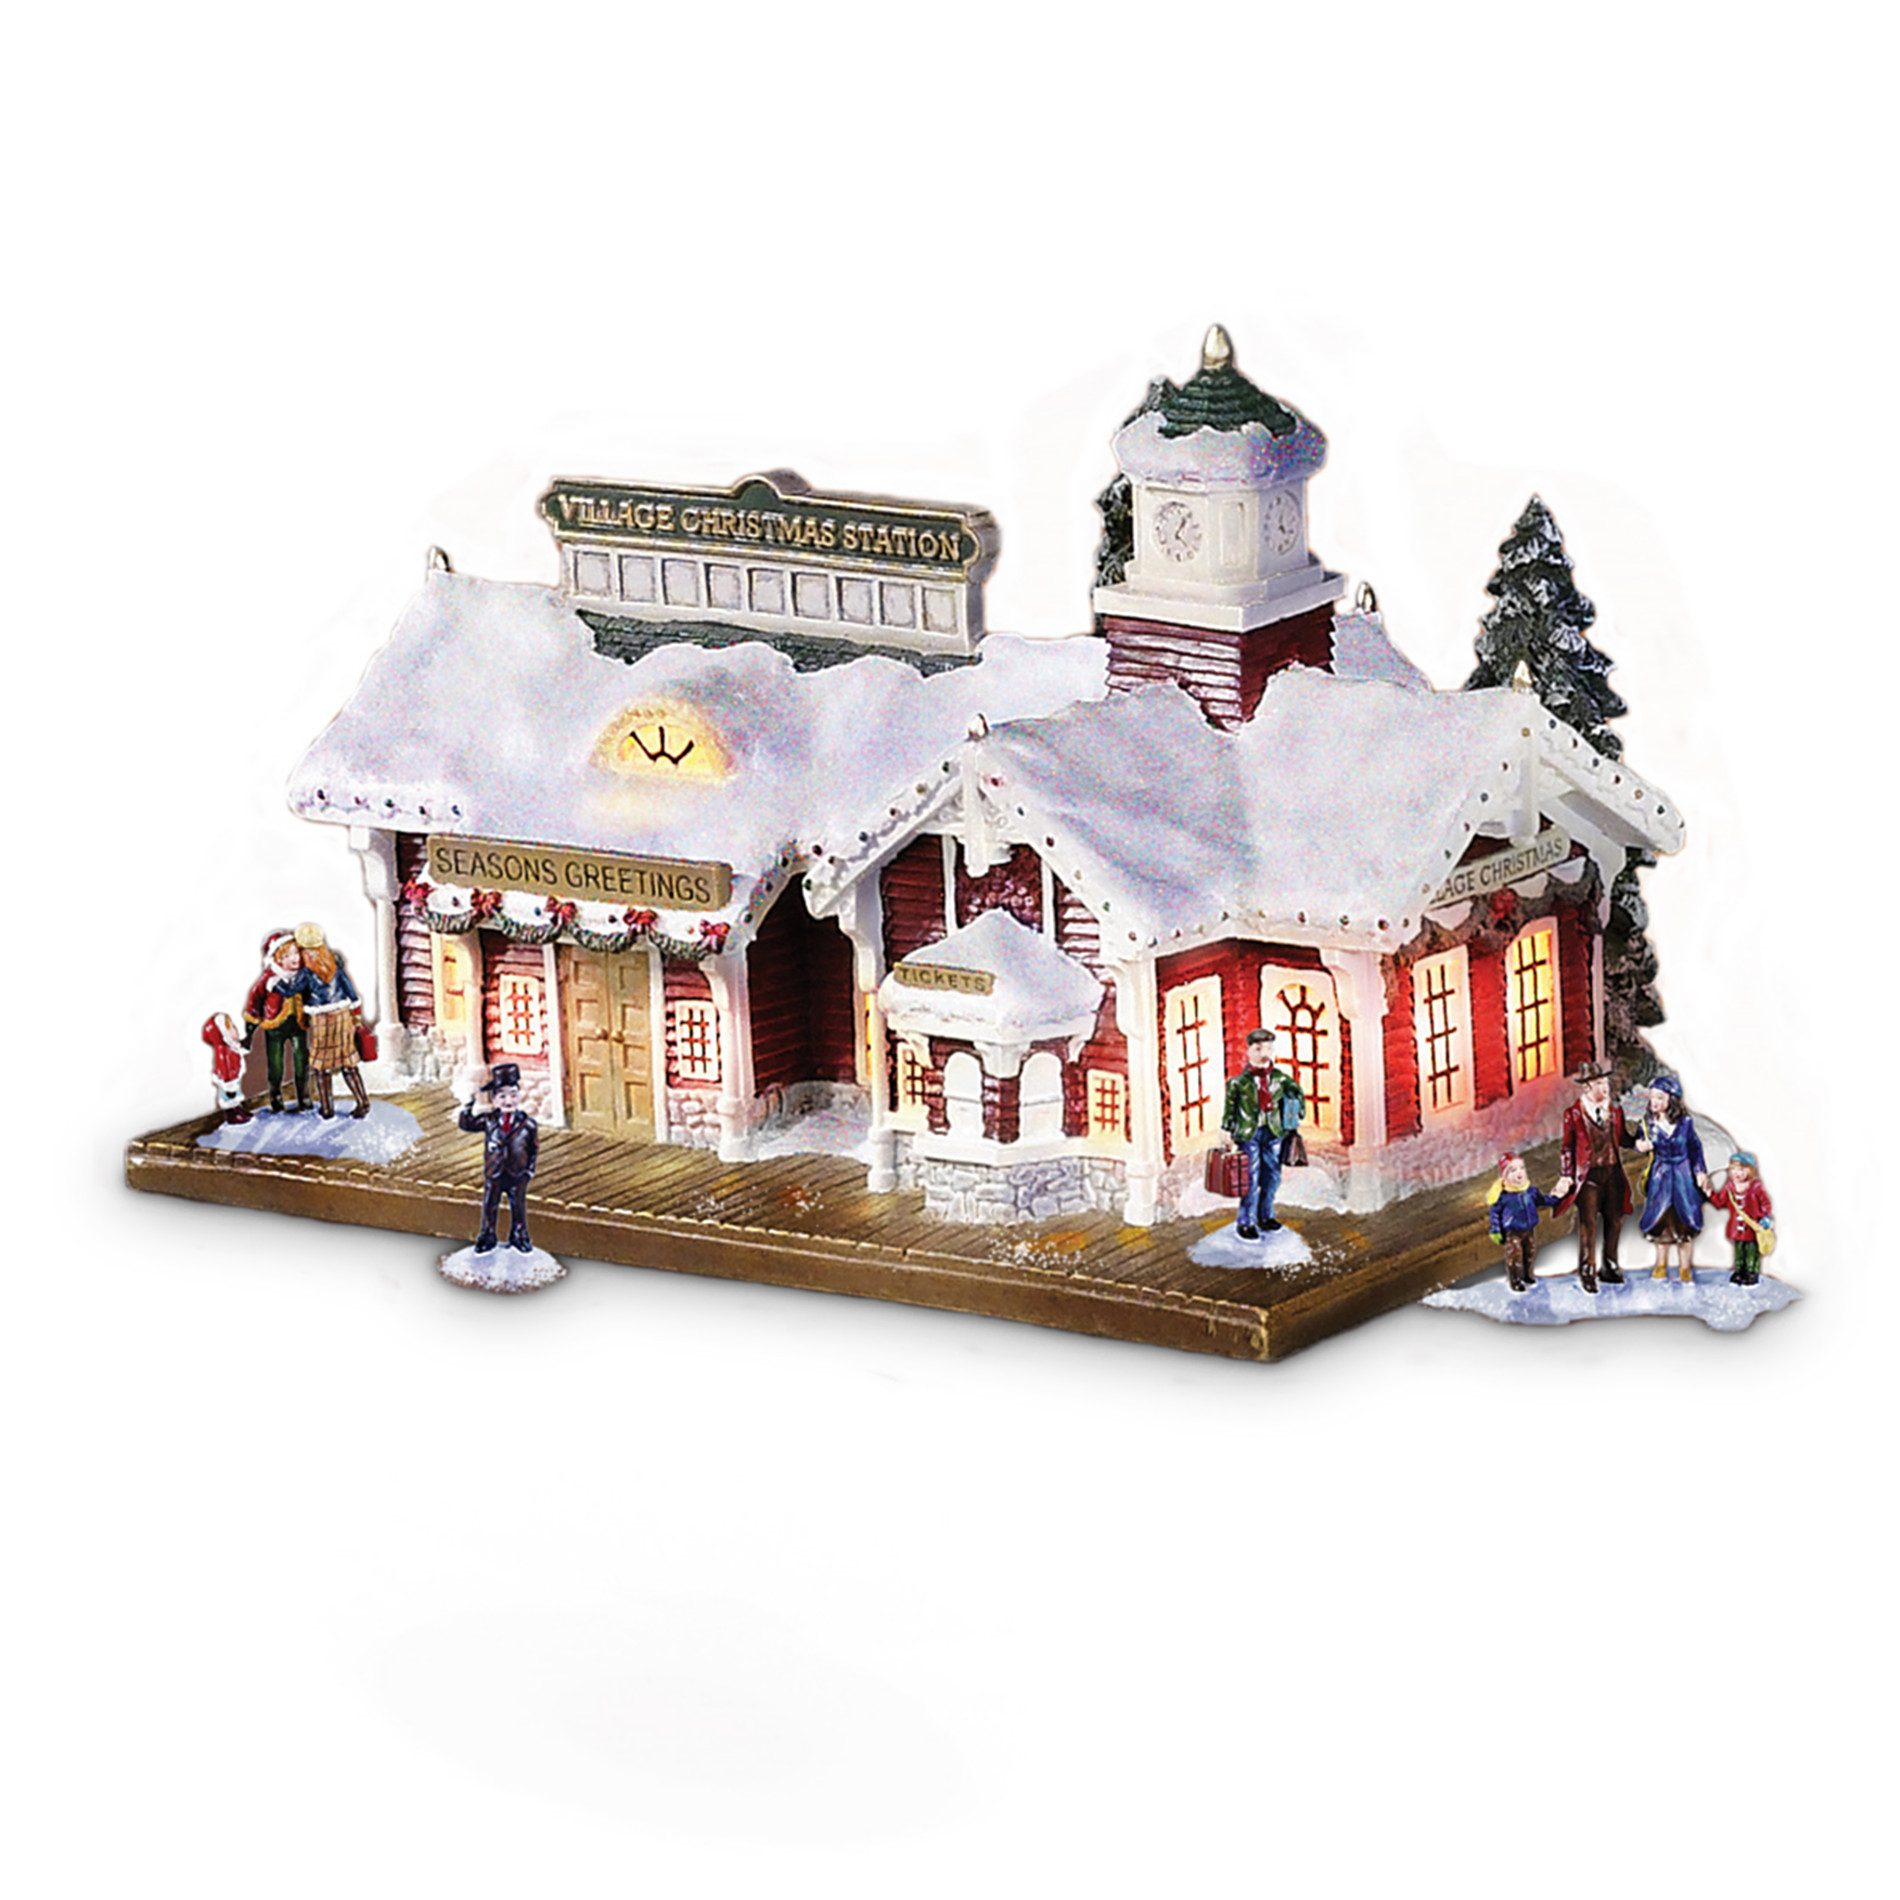 Hawthorne Village Village Christmas Lighted And Musical Train Station: Thomas Kinkade Train Accessory at Sears.com